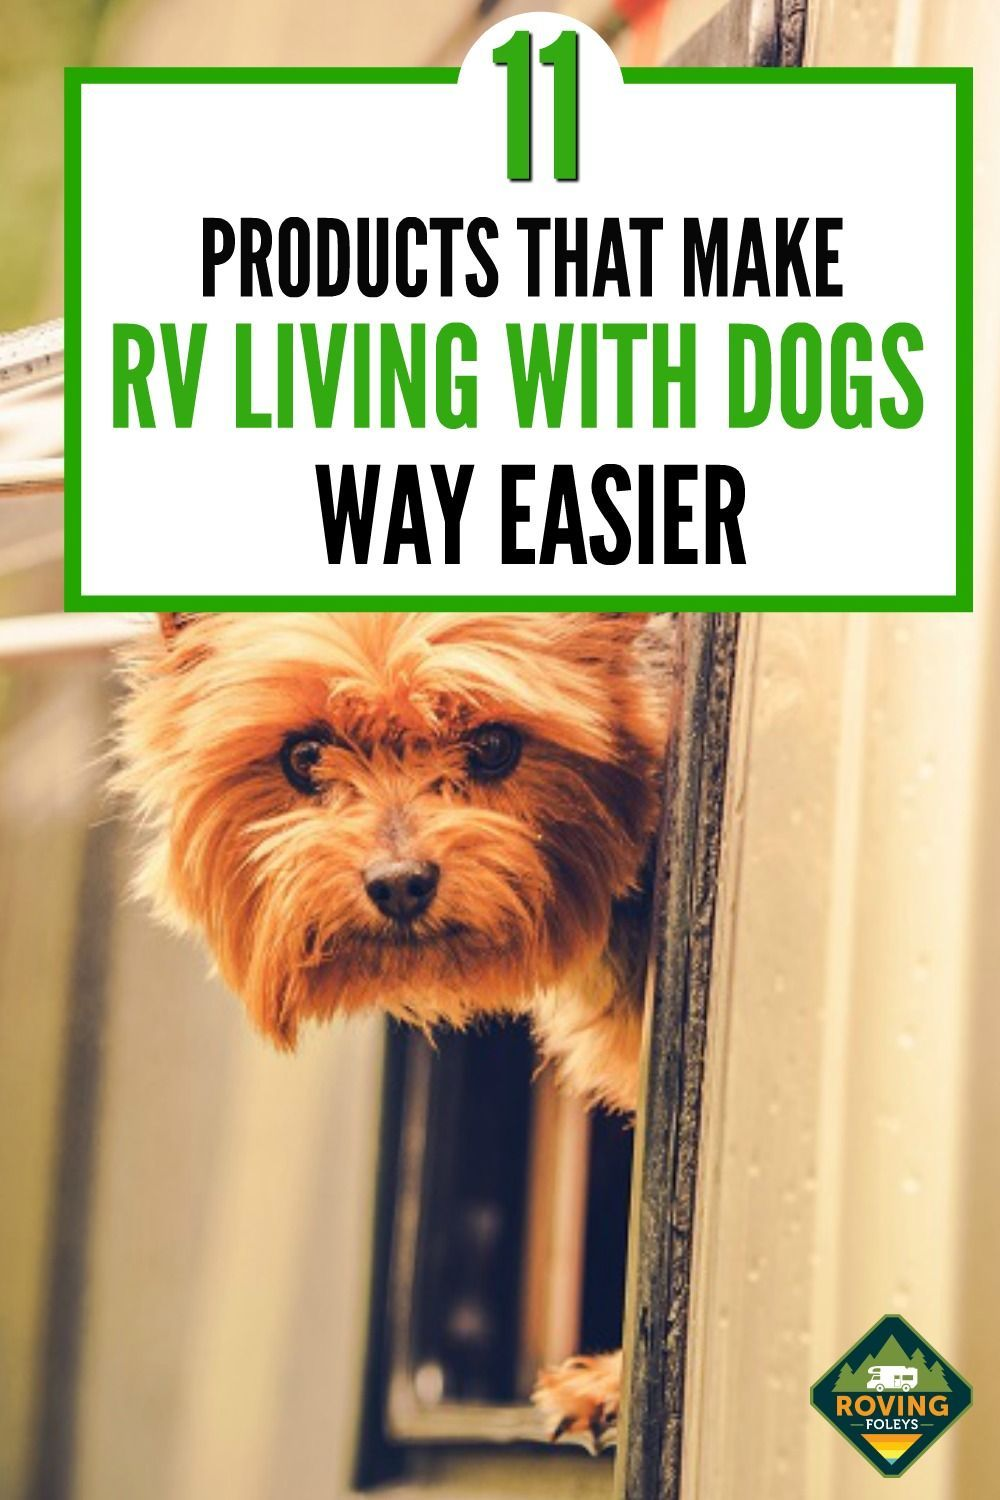 The Best Products That Make RV Living With Dogs Way Easier